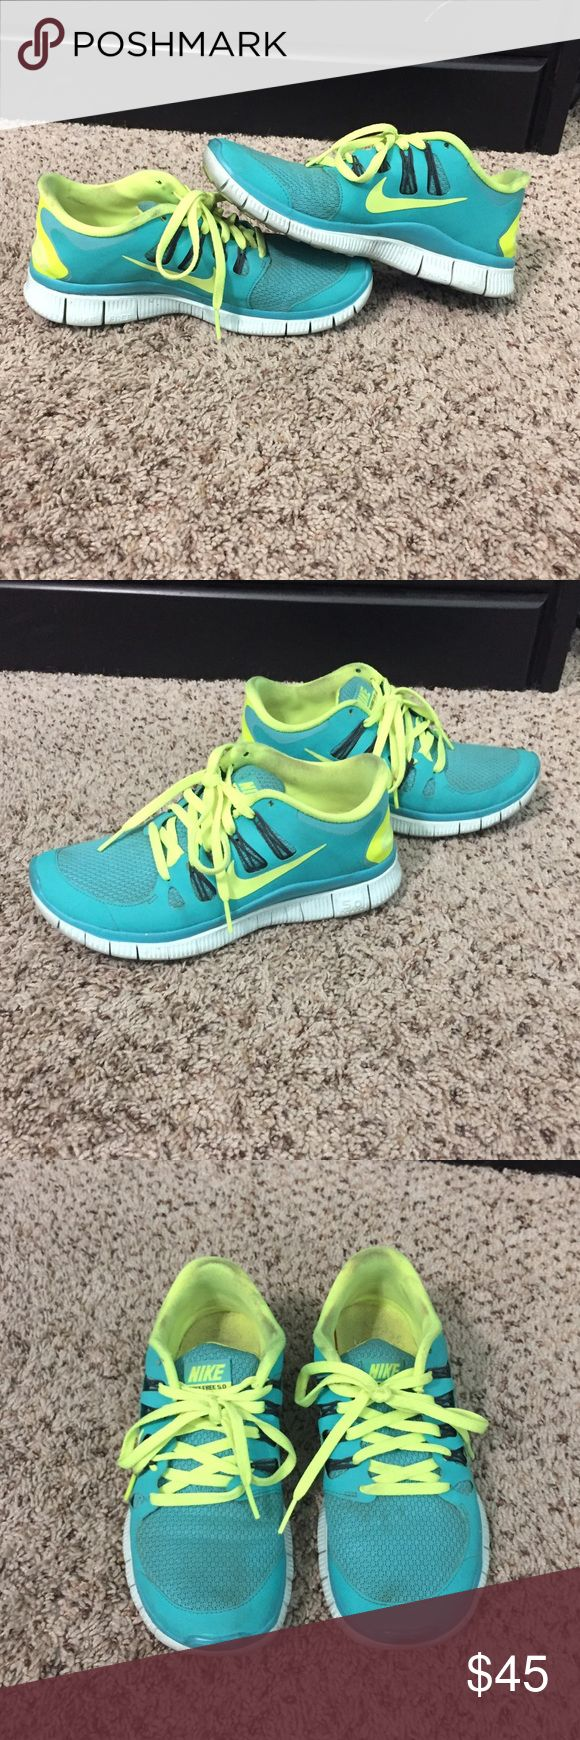 Nike Free 5.0 Teal & light lime green/yellow color. I will wash upon request but only if you pay full asking price. Nike Shoes Athletic Shoes